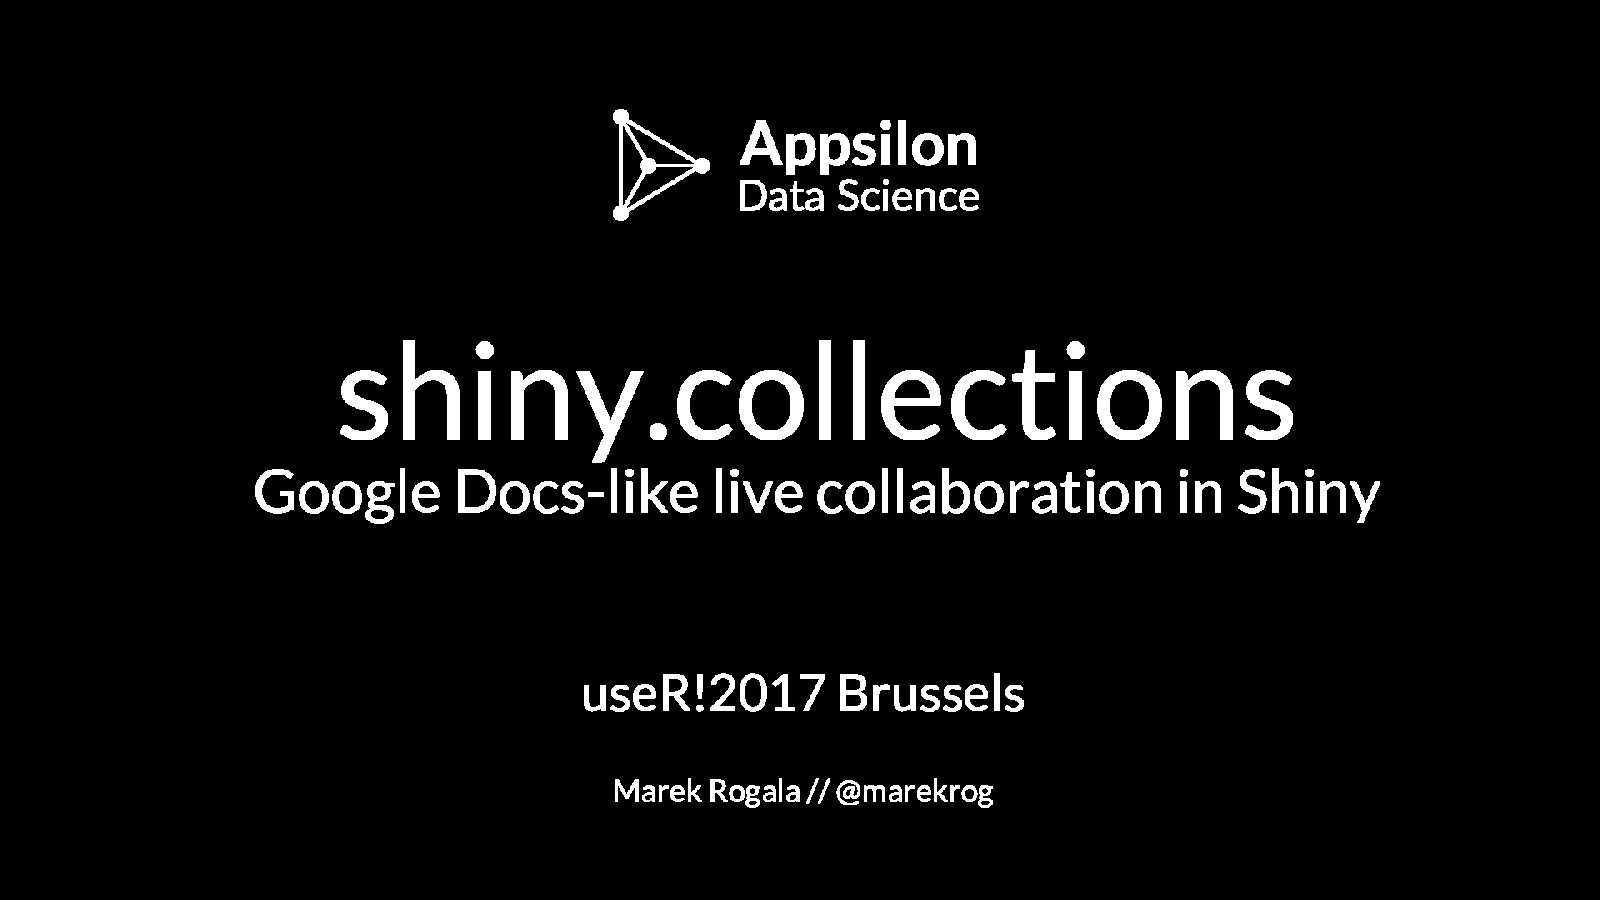 Shiny.collections: Google Docs-like live collaboration in Shiny